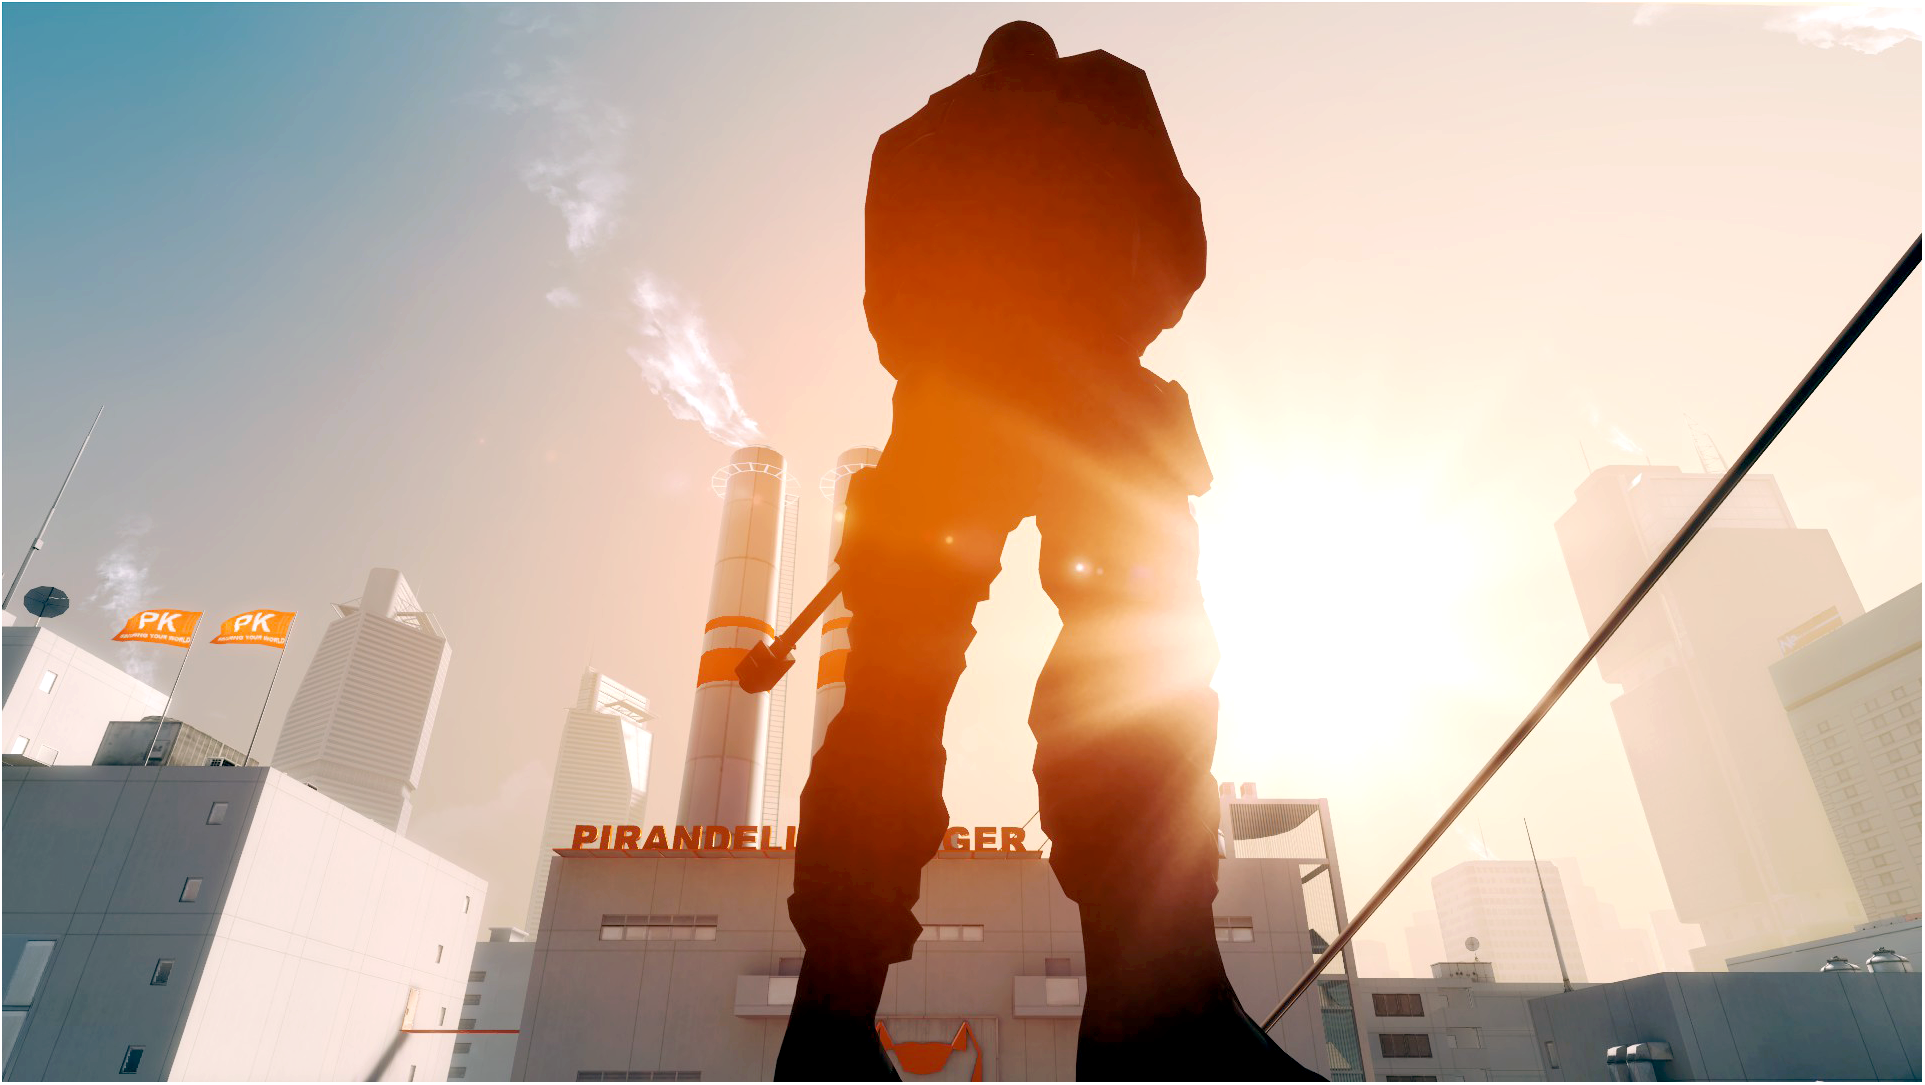 Mirror's Edge_0100_JTC.png